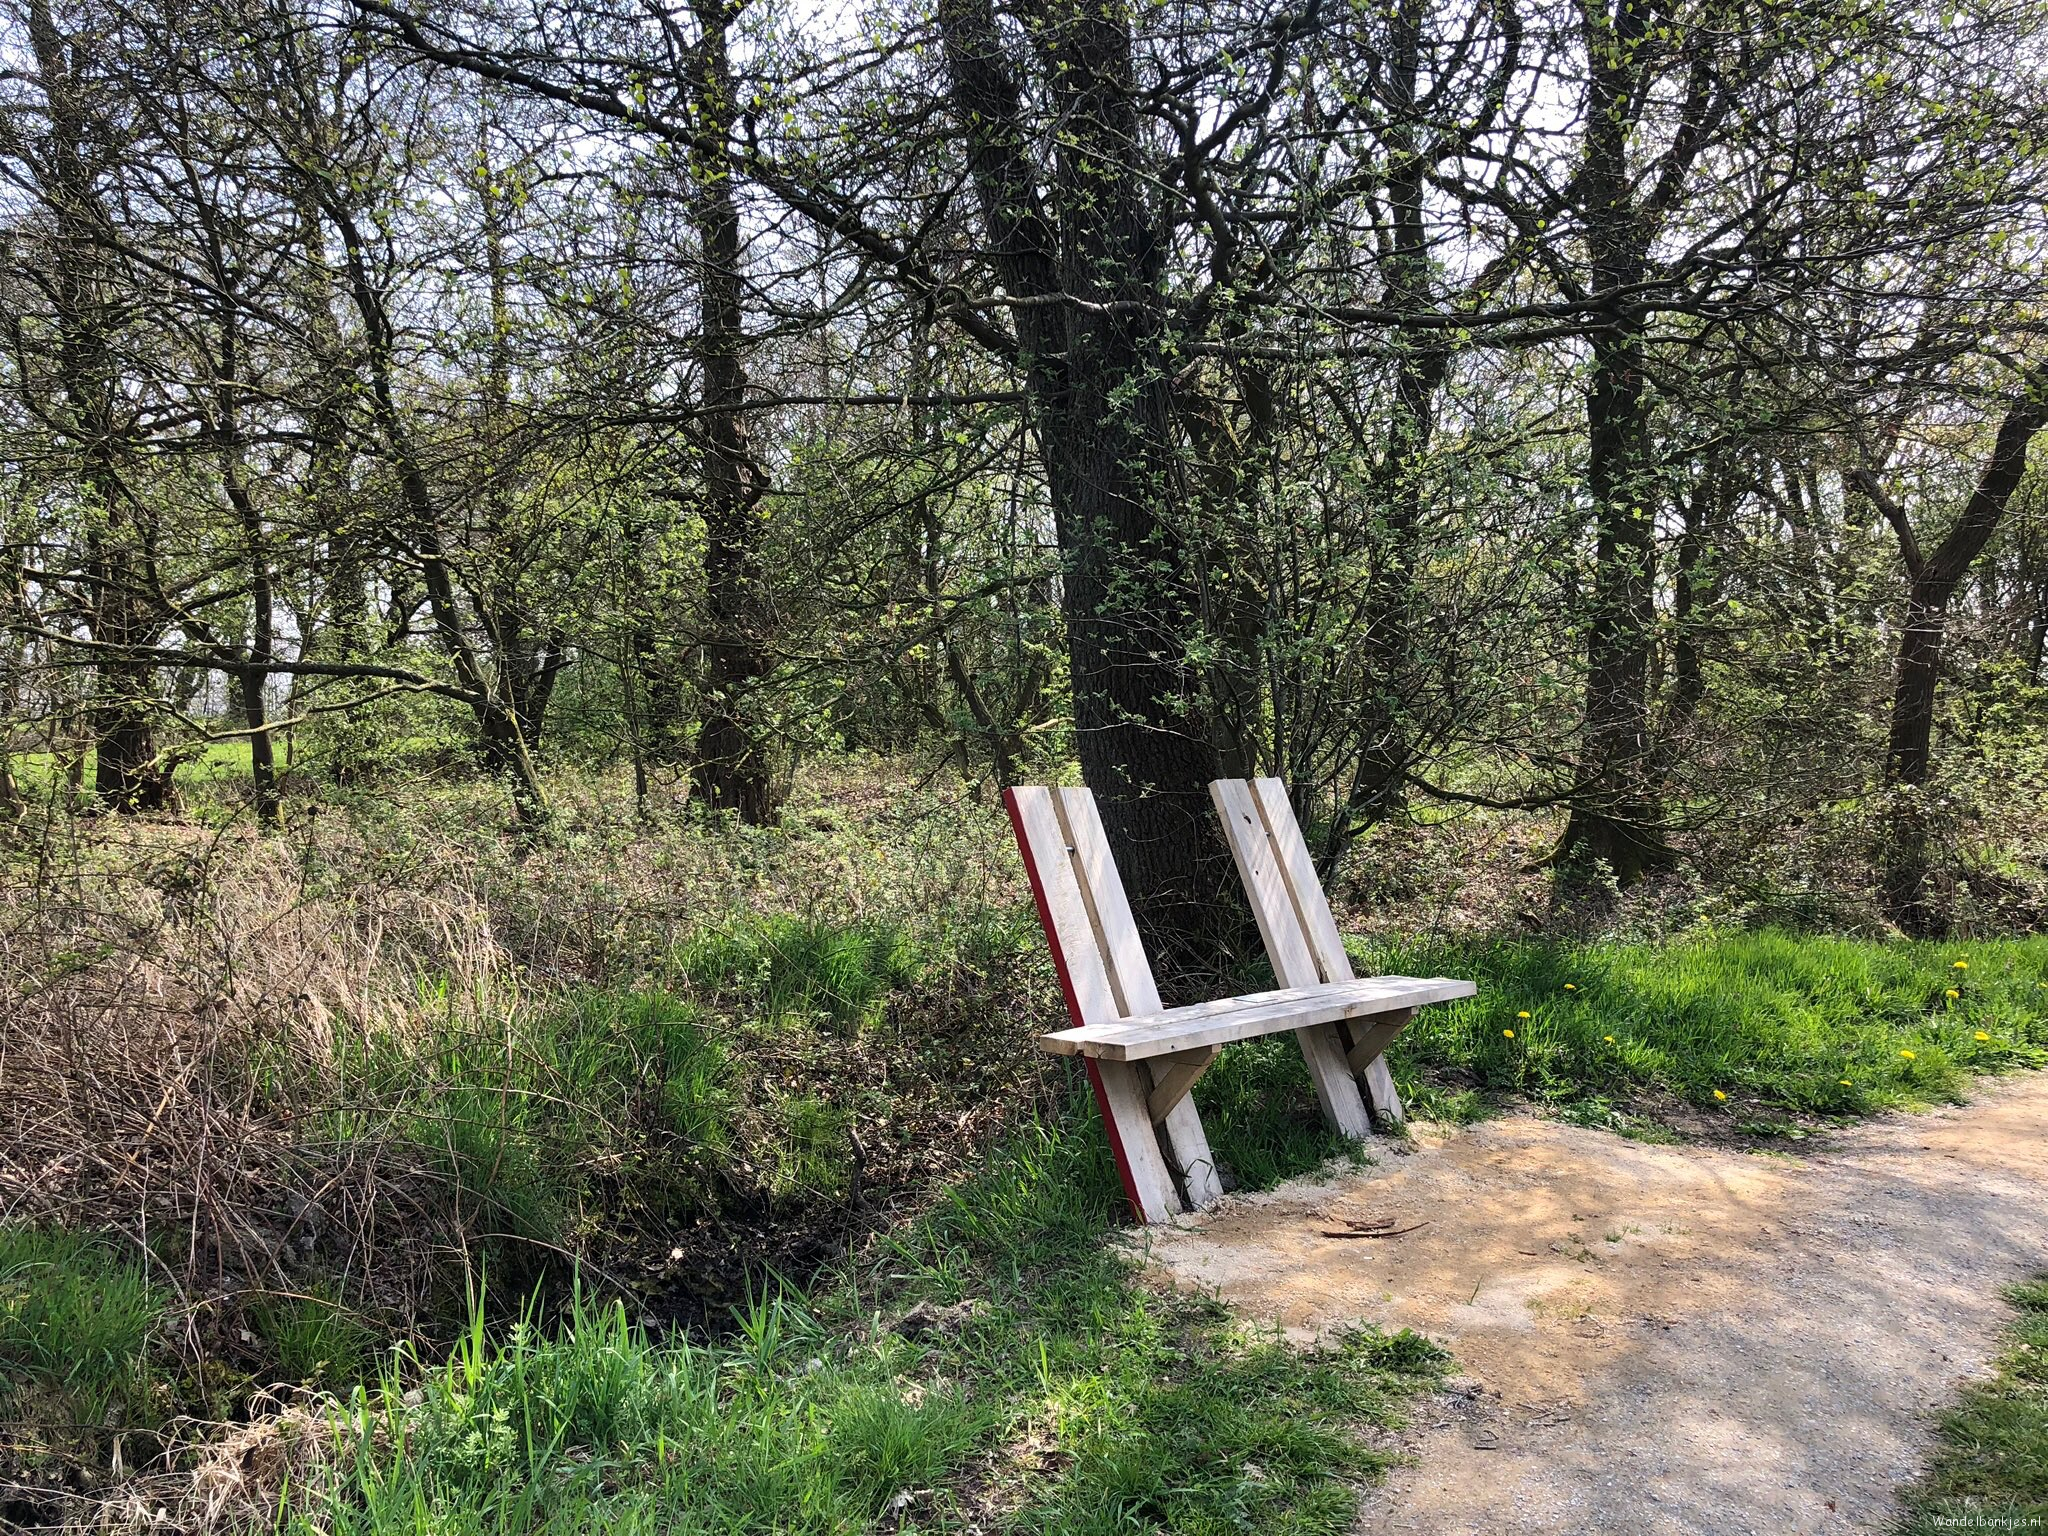 rt-gertientje-today-a-nice-bench-spotted-in-zweeloo-walkersbenches-walking benches-https-t-co-ugrlrtu7xg